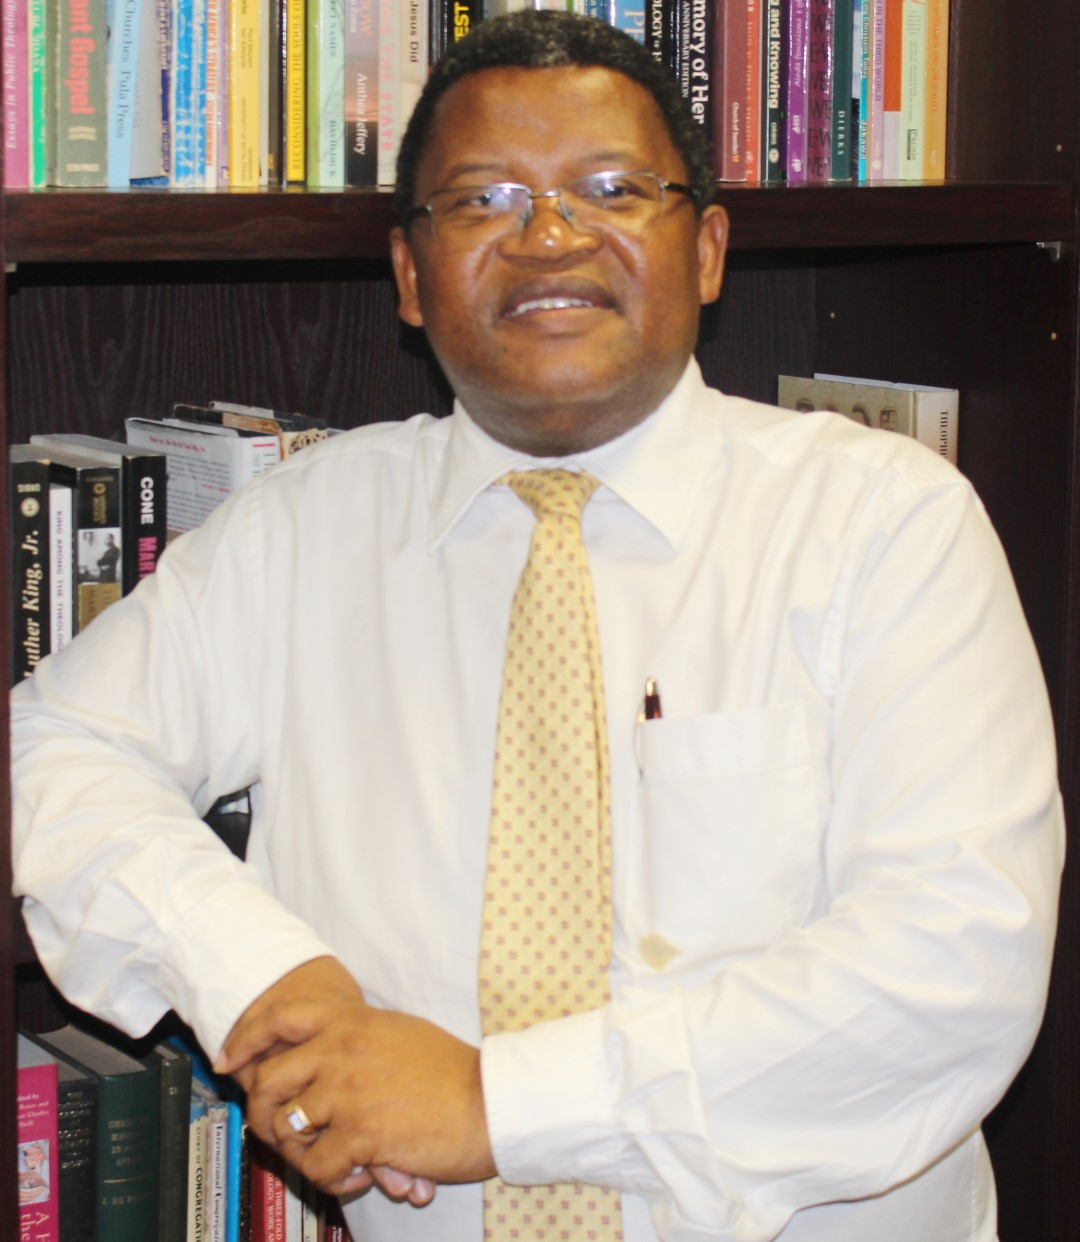 Professor Simangaliso Kumalo is Fellow of Wesley House, an affiliated college of Cambridge University.